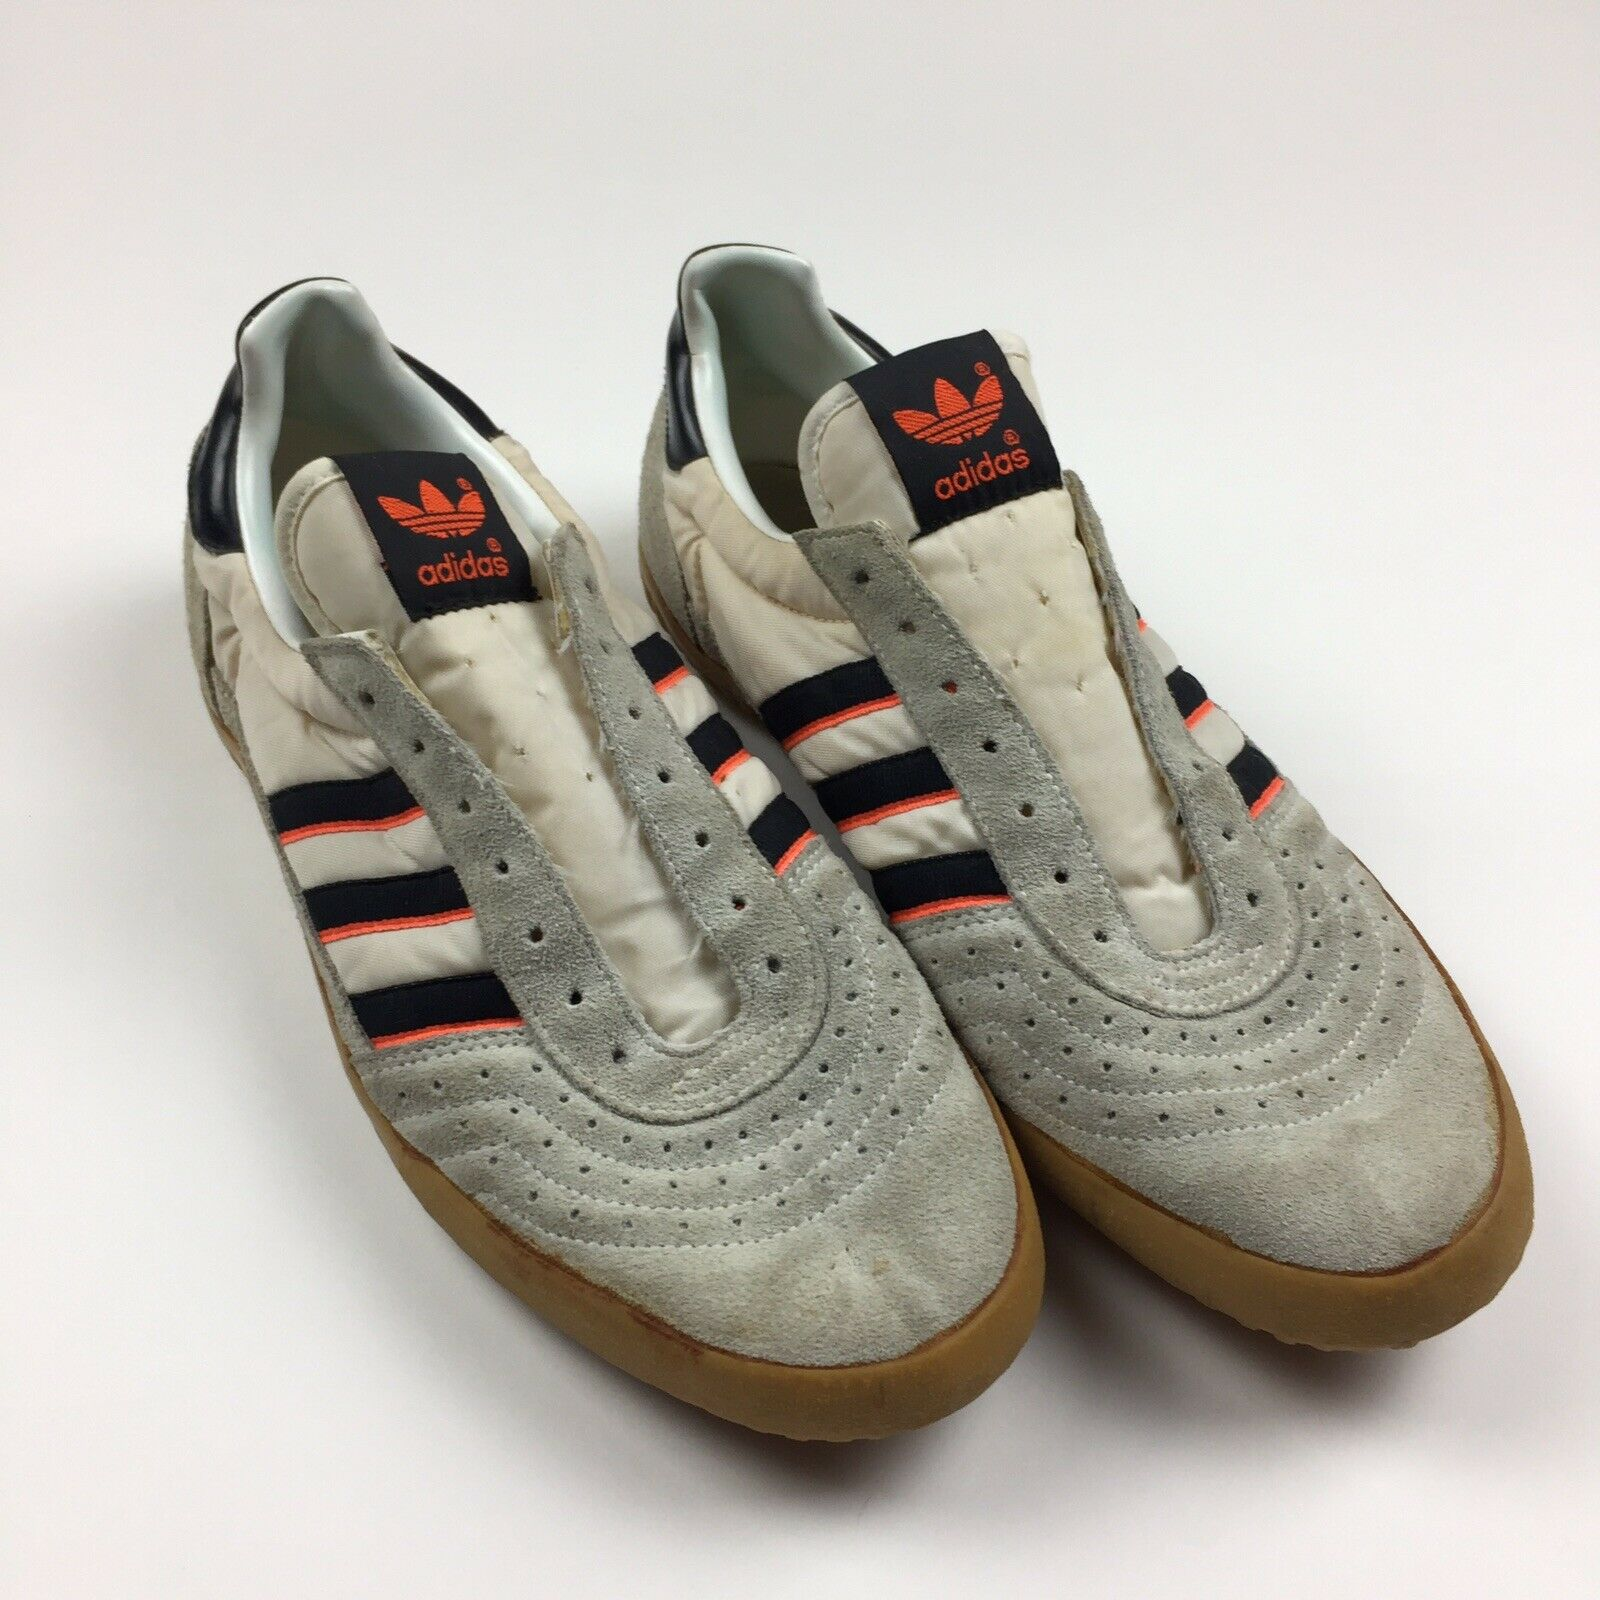 c2caab5a701c4 Vintage Adidas Indoor Courts shoes Size 9 Tennis Style 80s Rare ...